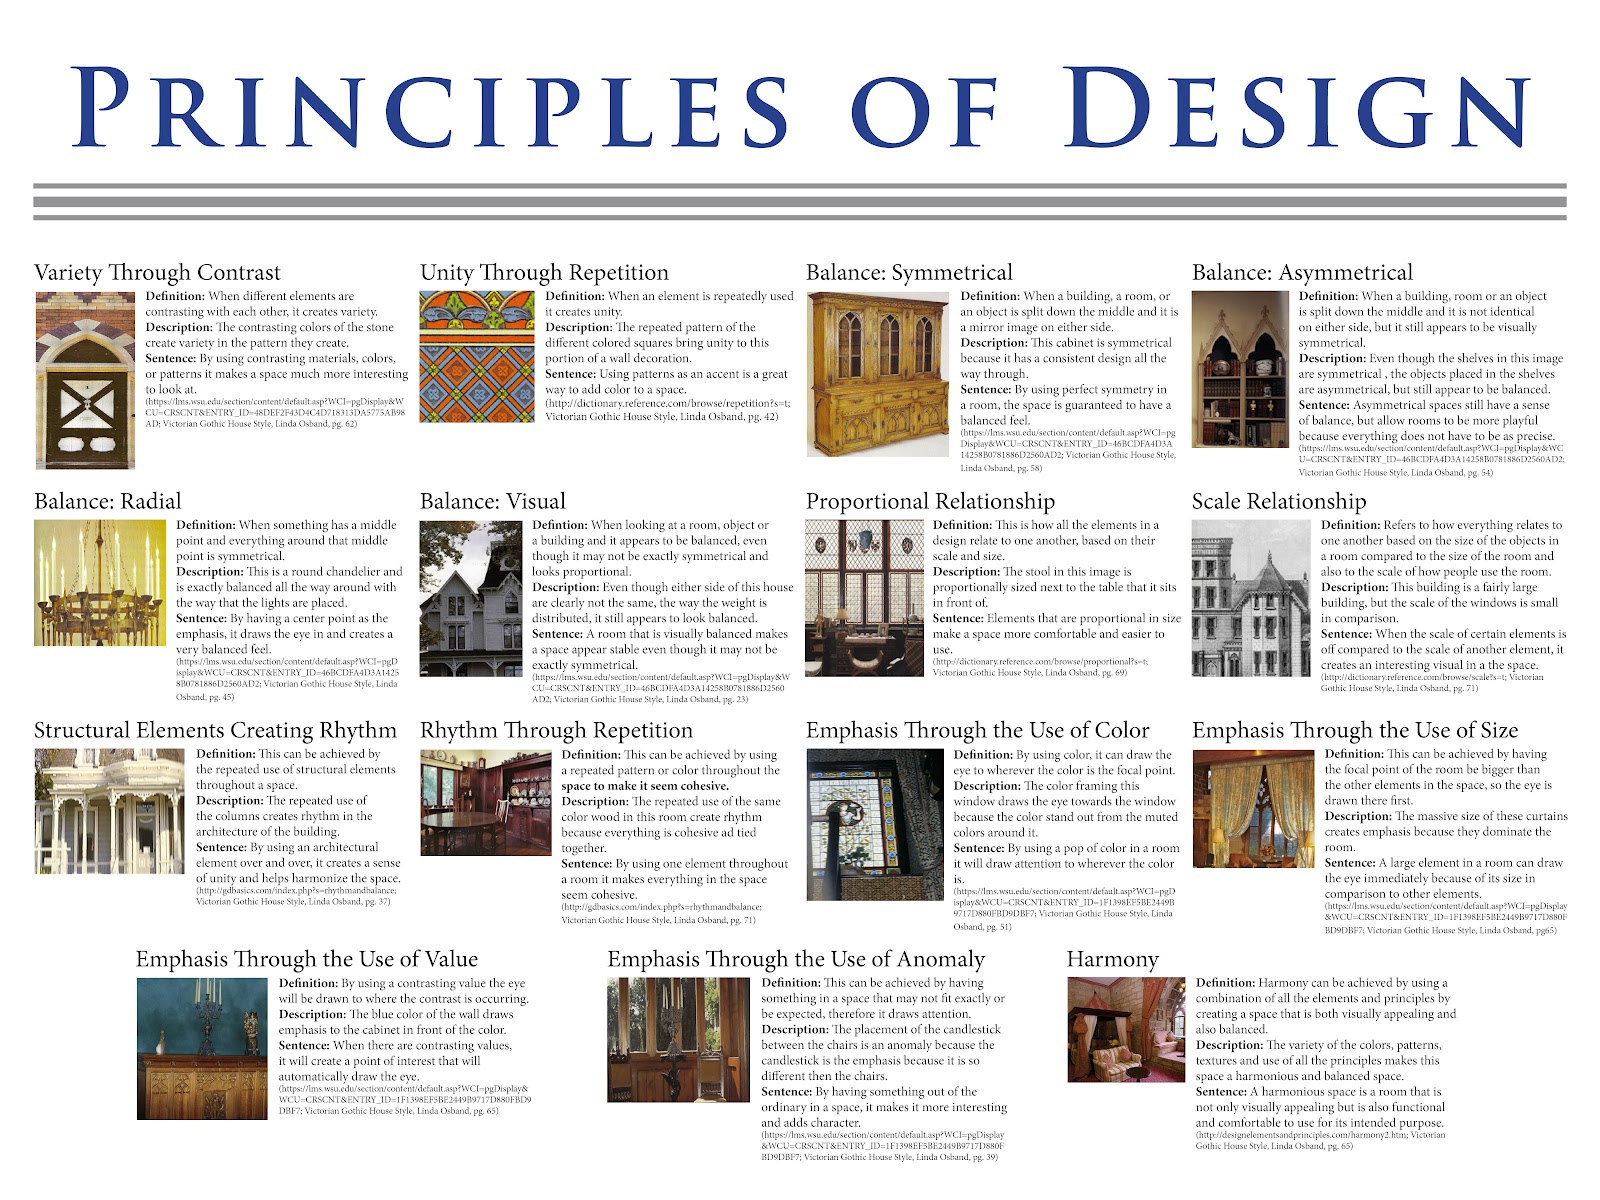 Design Element And Principle : Principles of design visual communication